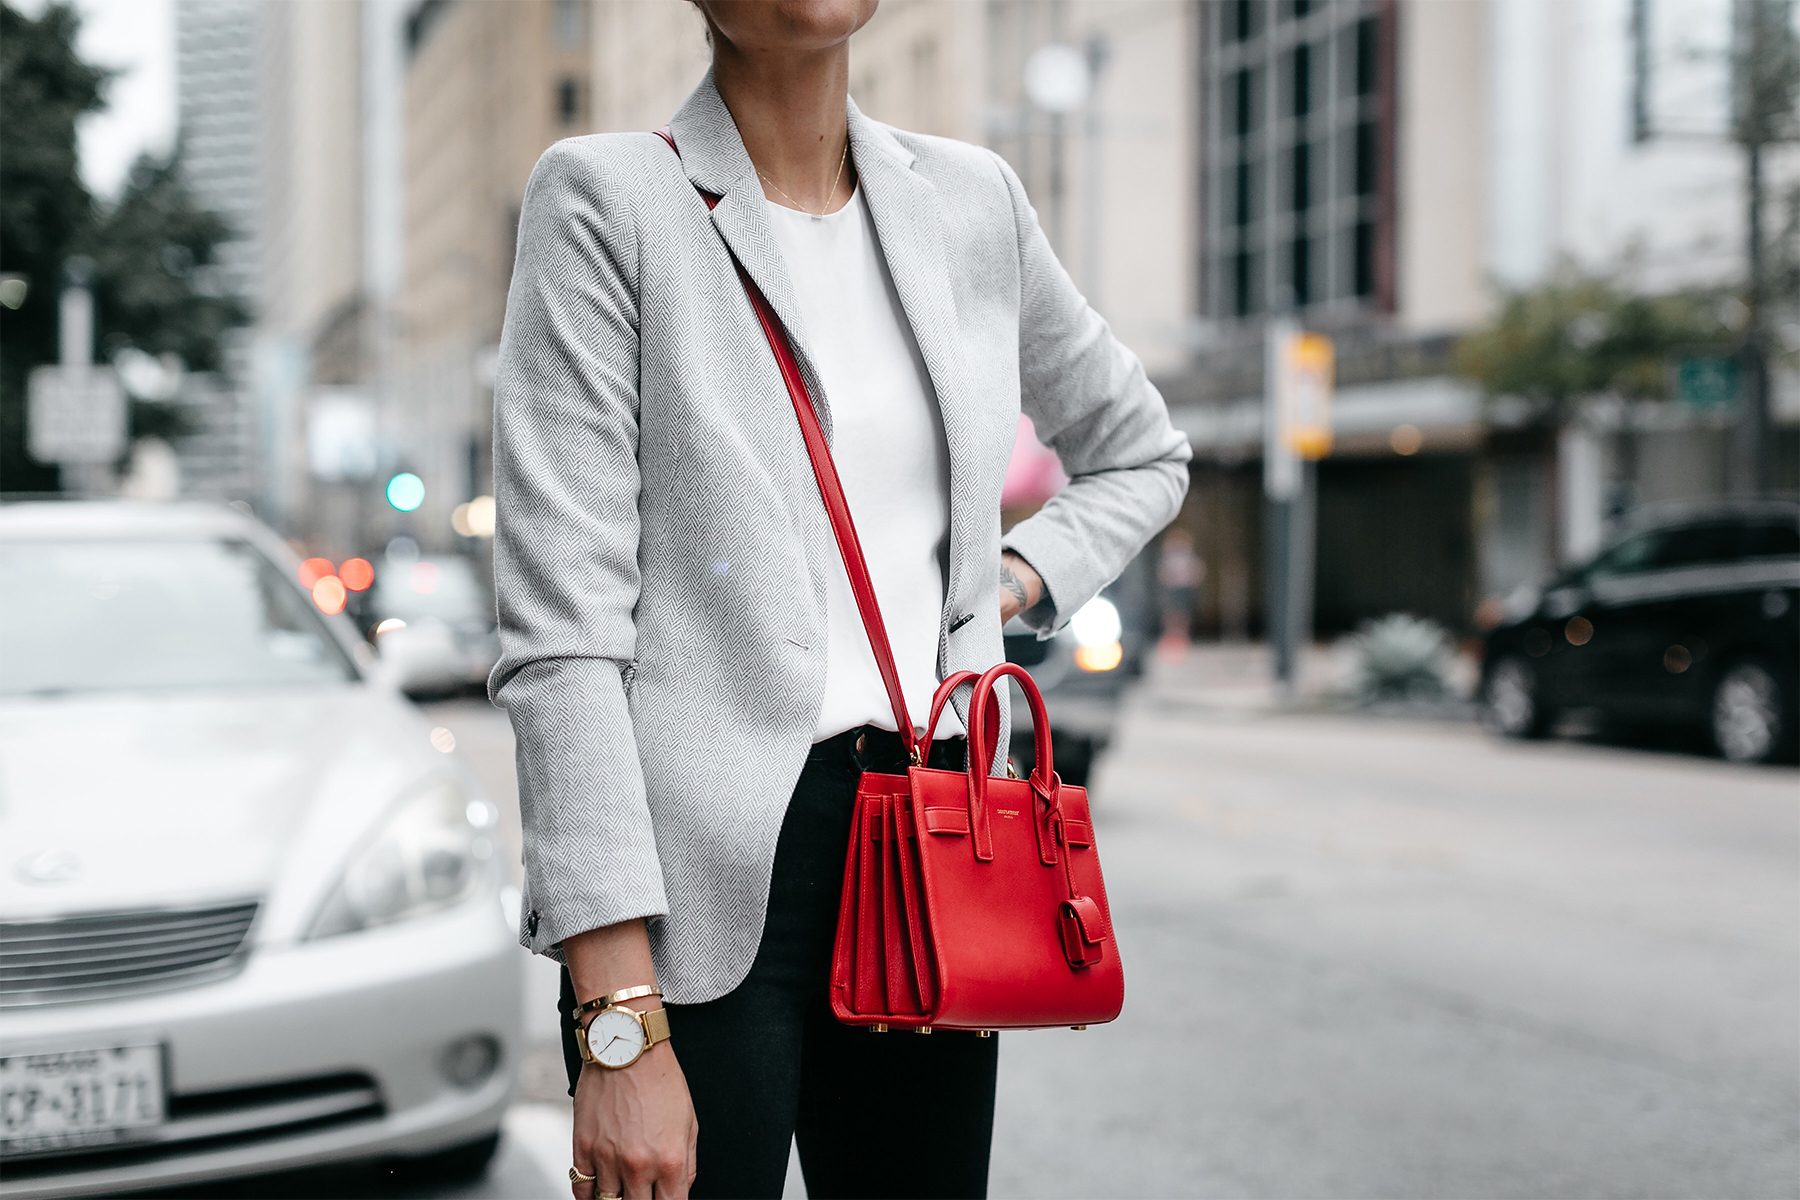 Grey Blazer White Top Black Skinny Jeans Saint Laurent Sac de Jour Nano Red Fashion Jackson Dallas Blogger Fashion Blogger Street Style